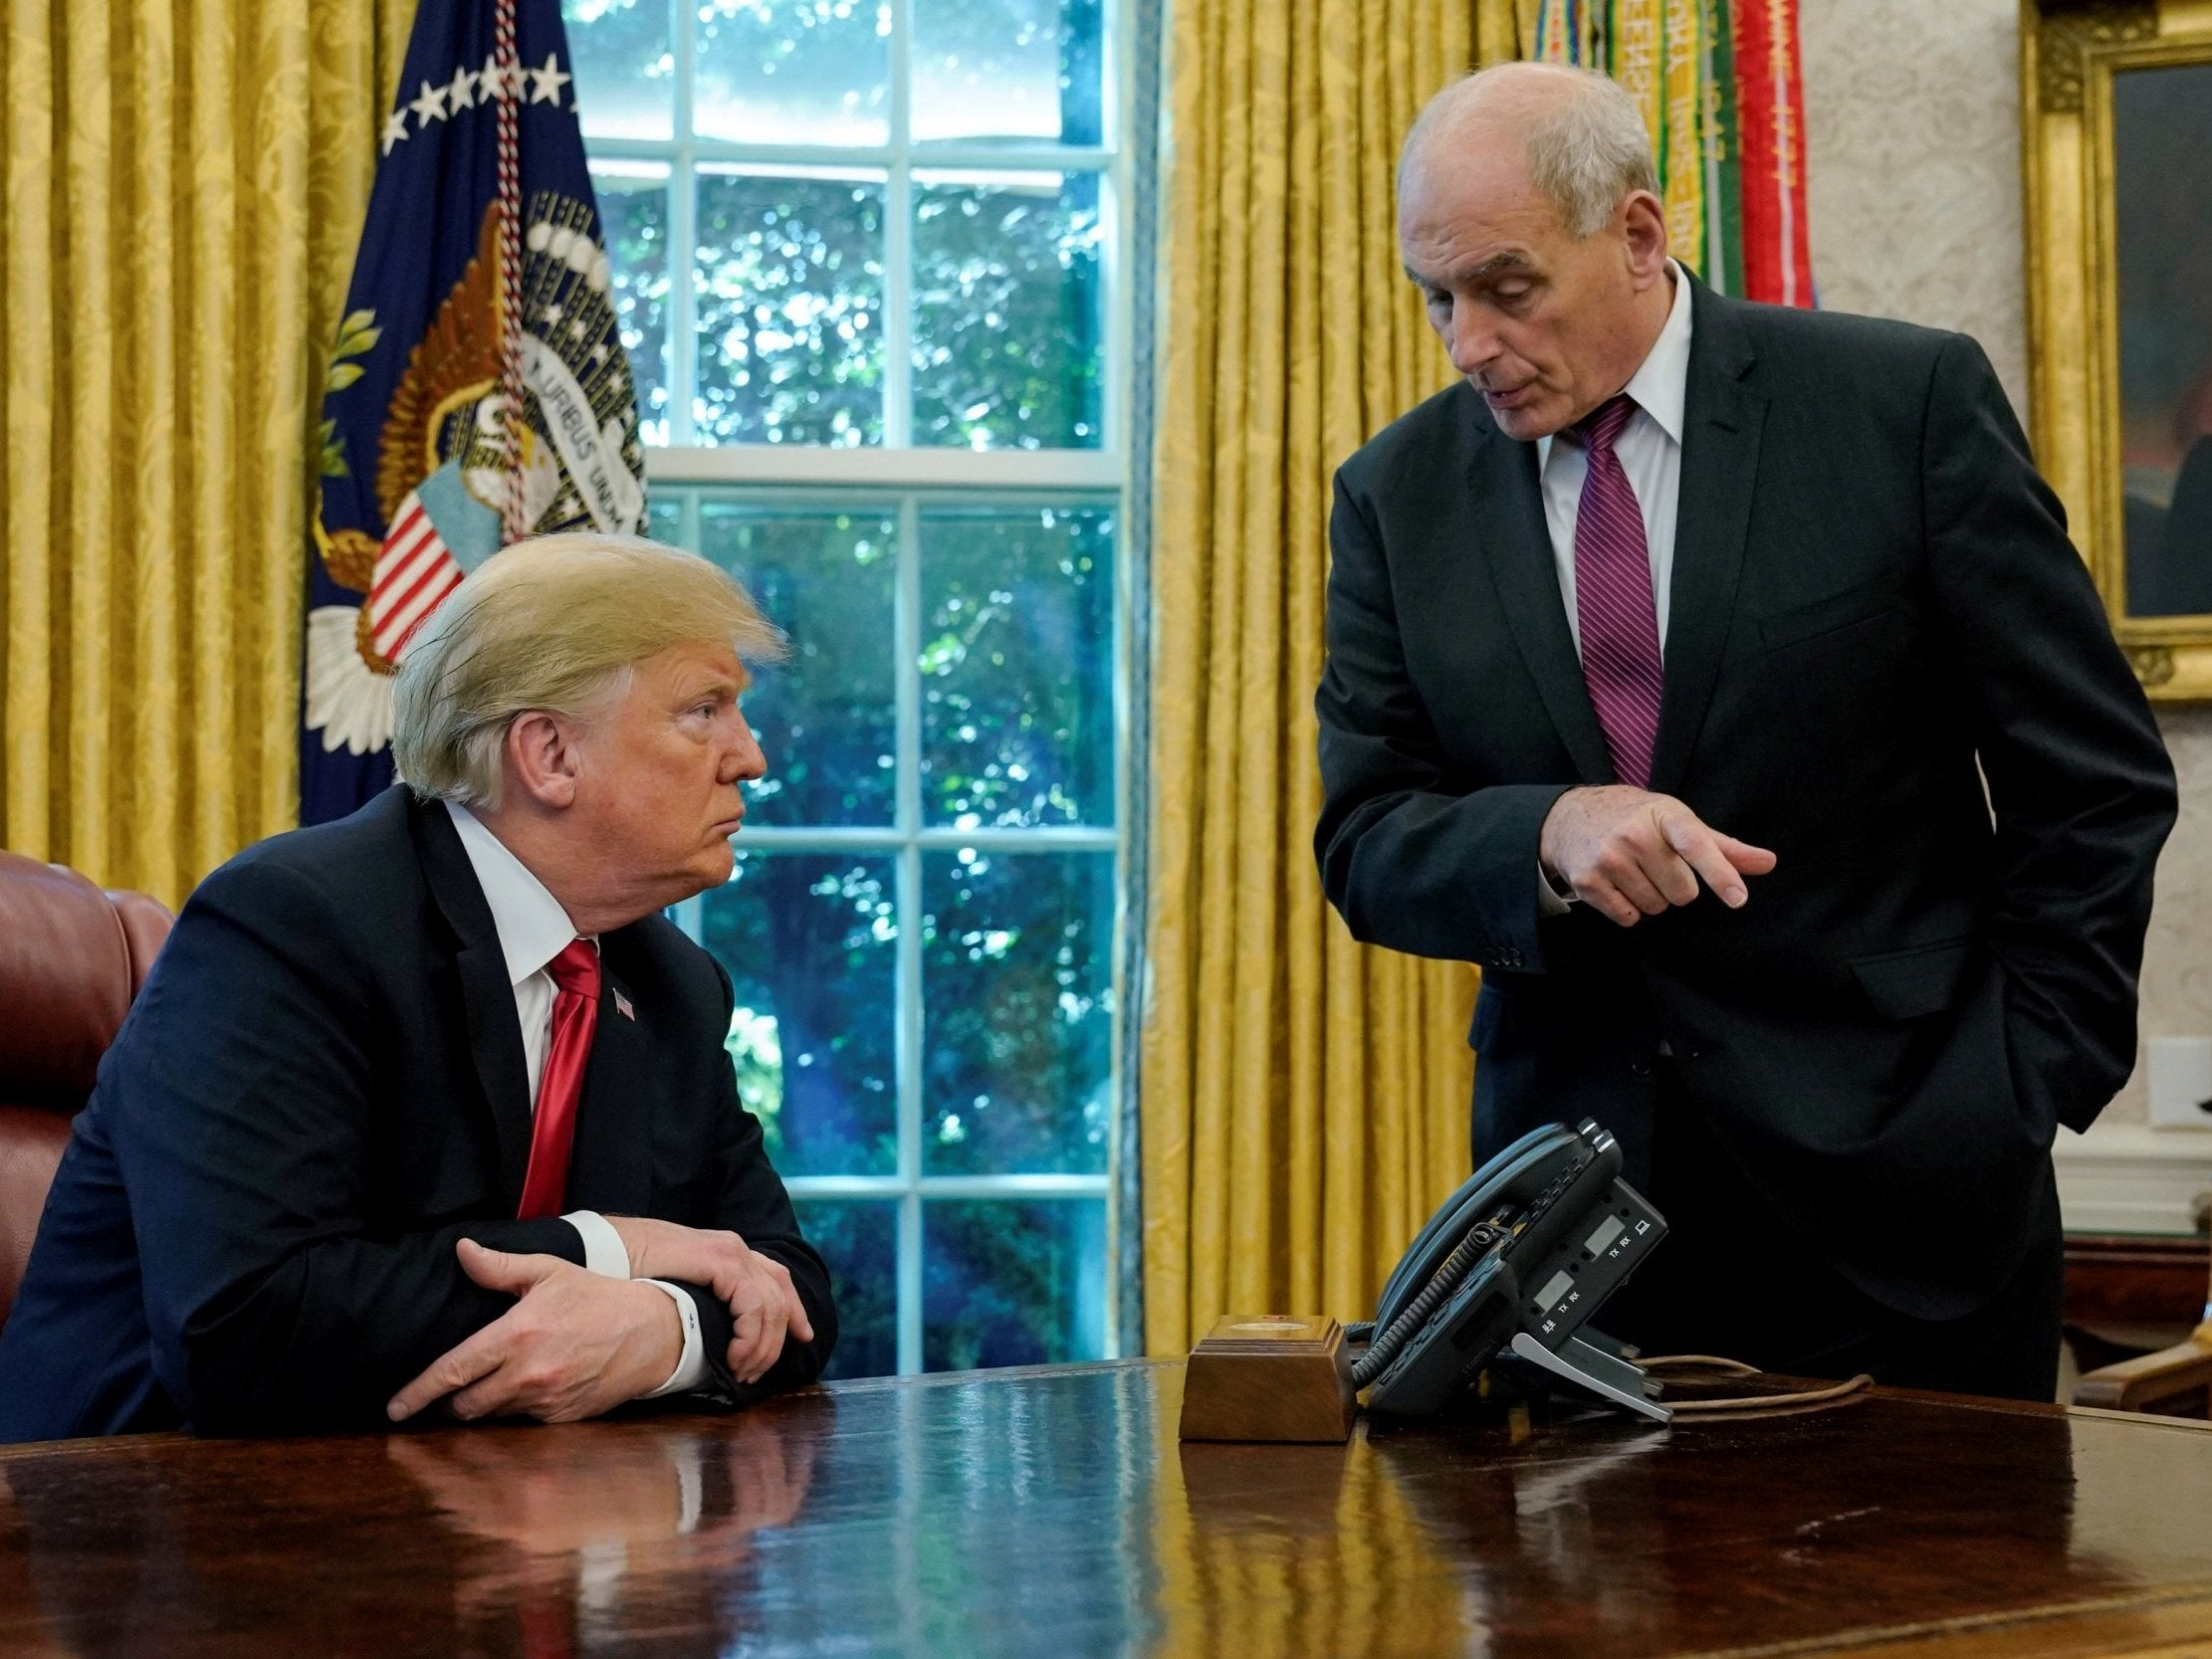 Trump tries to fire John Kelly 'but Kelly just ignores him', White House official says